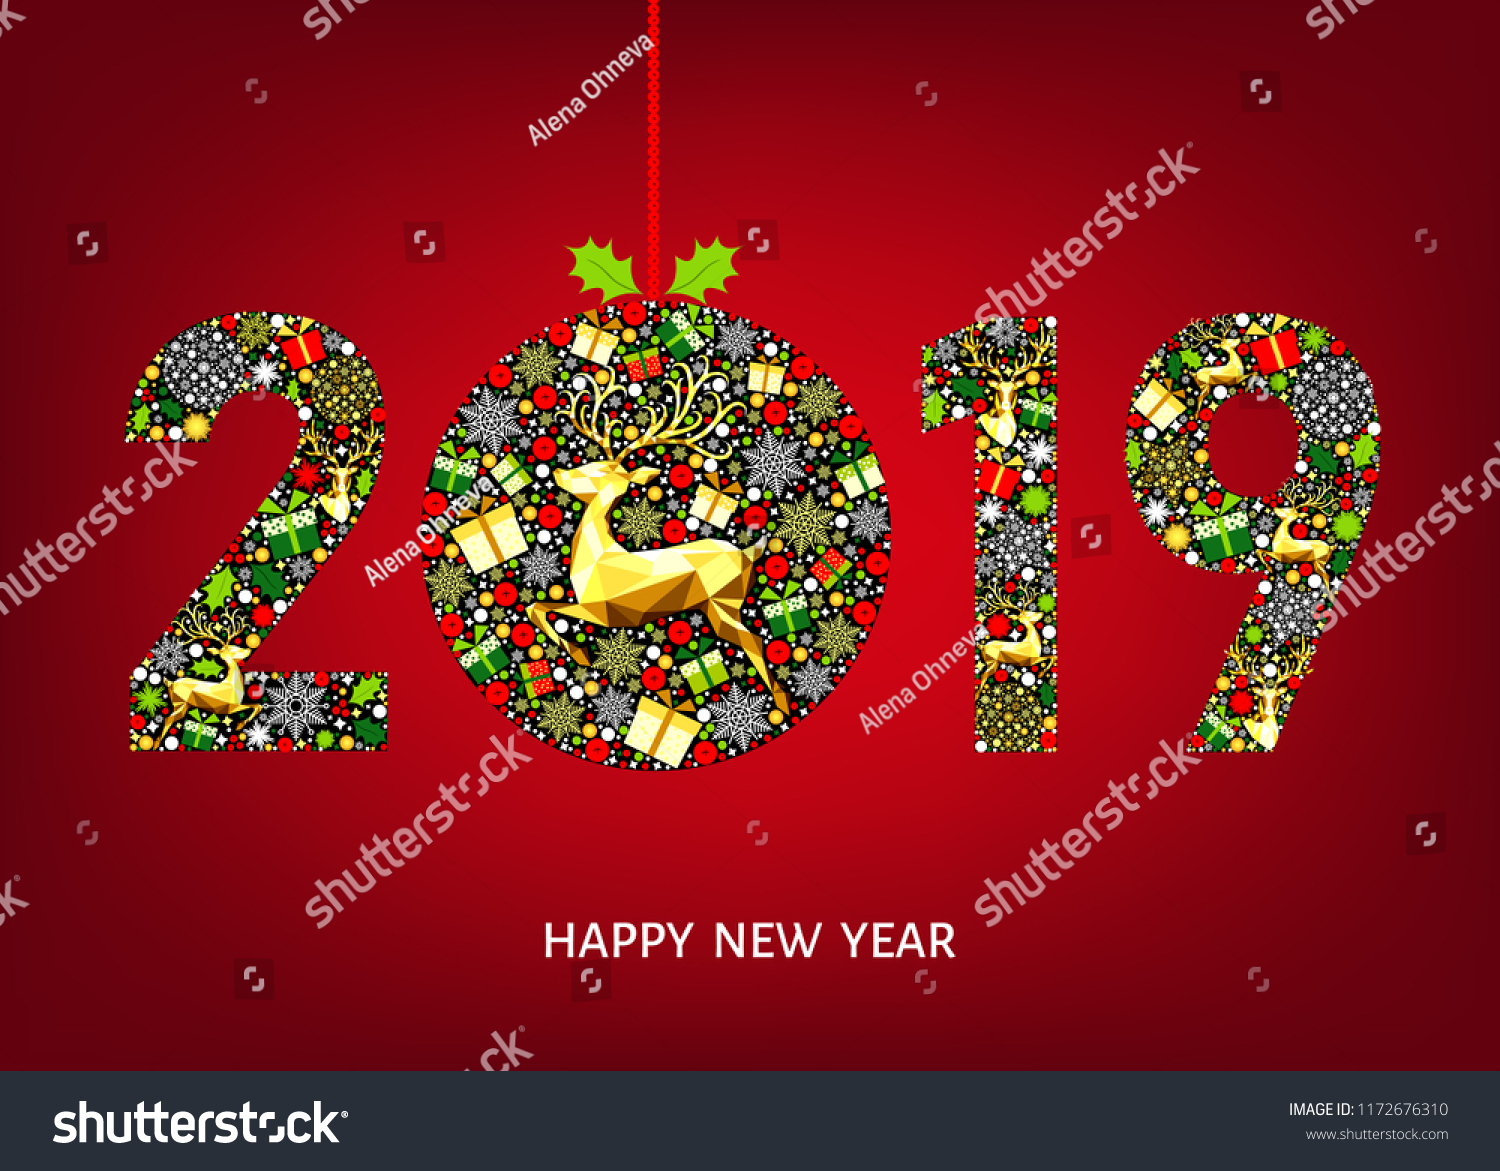 2019 happy new year greeting card on red background with christmas ball with gold reindeer